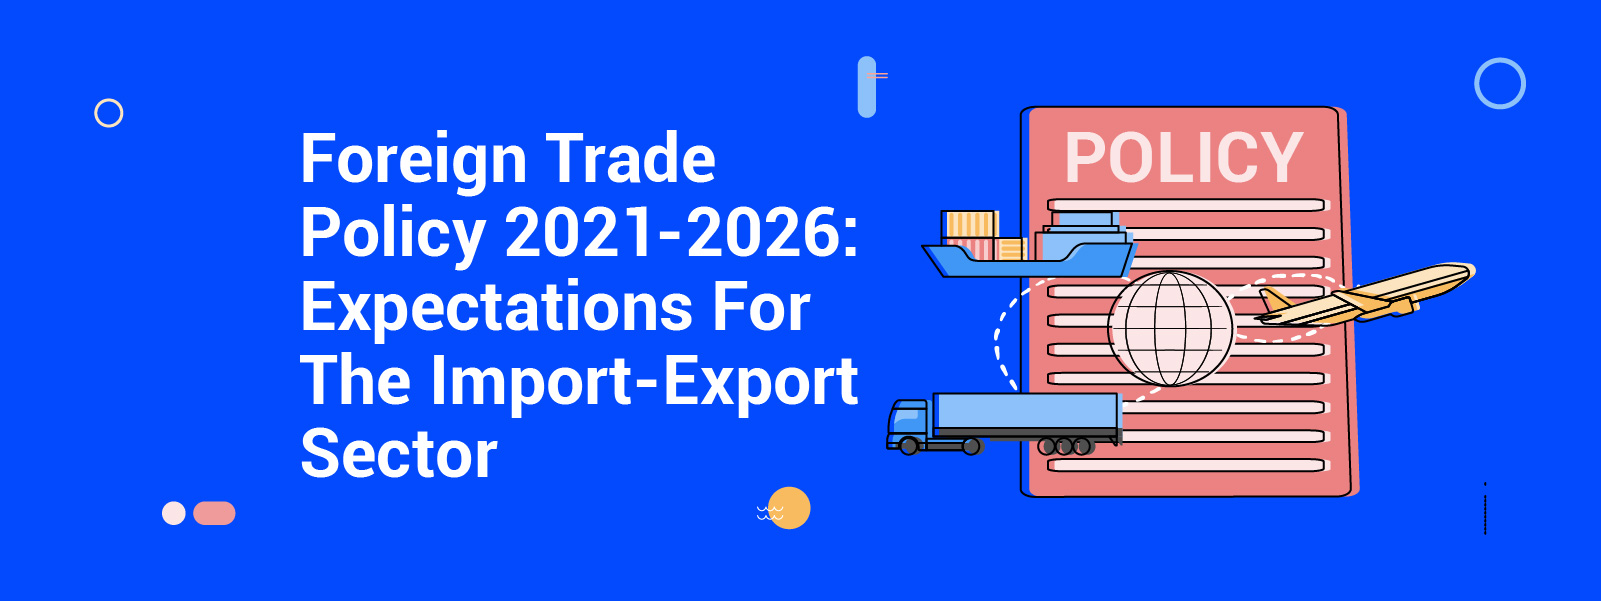 Foreign Trade Policy 2021-2026: Expectations For The Import-Export Sector